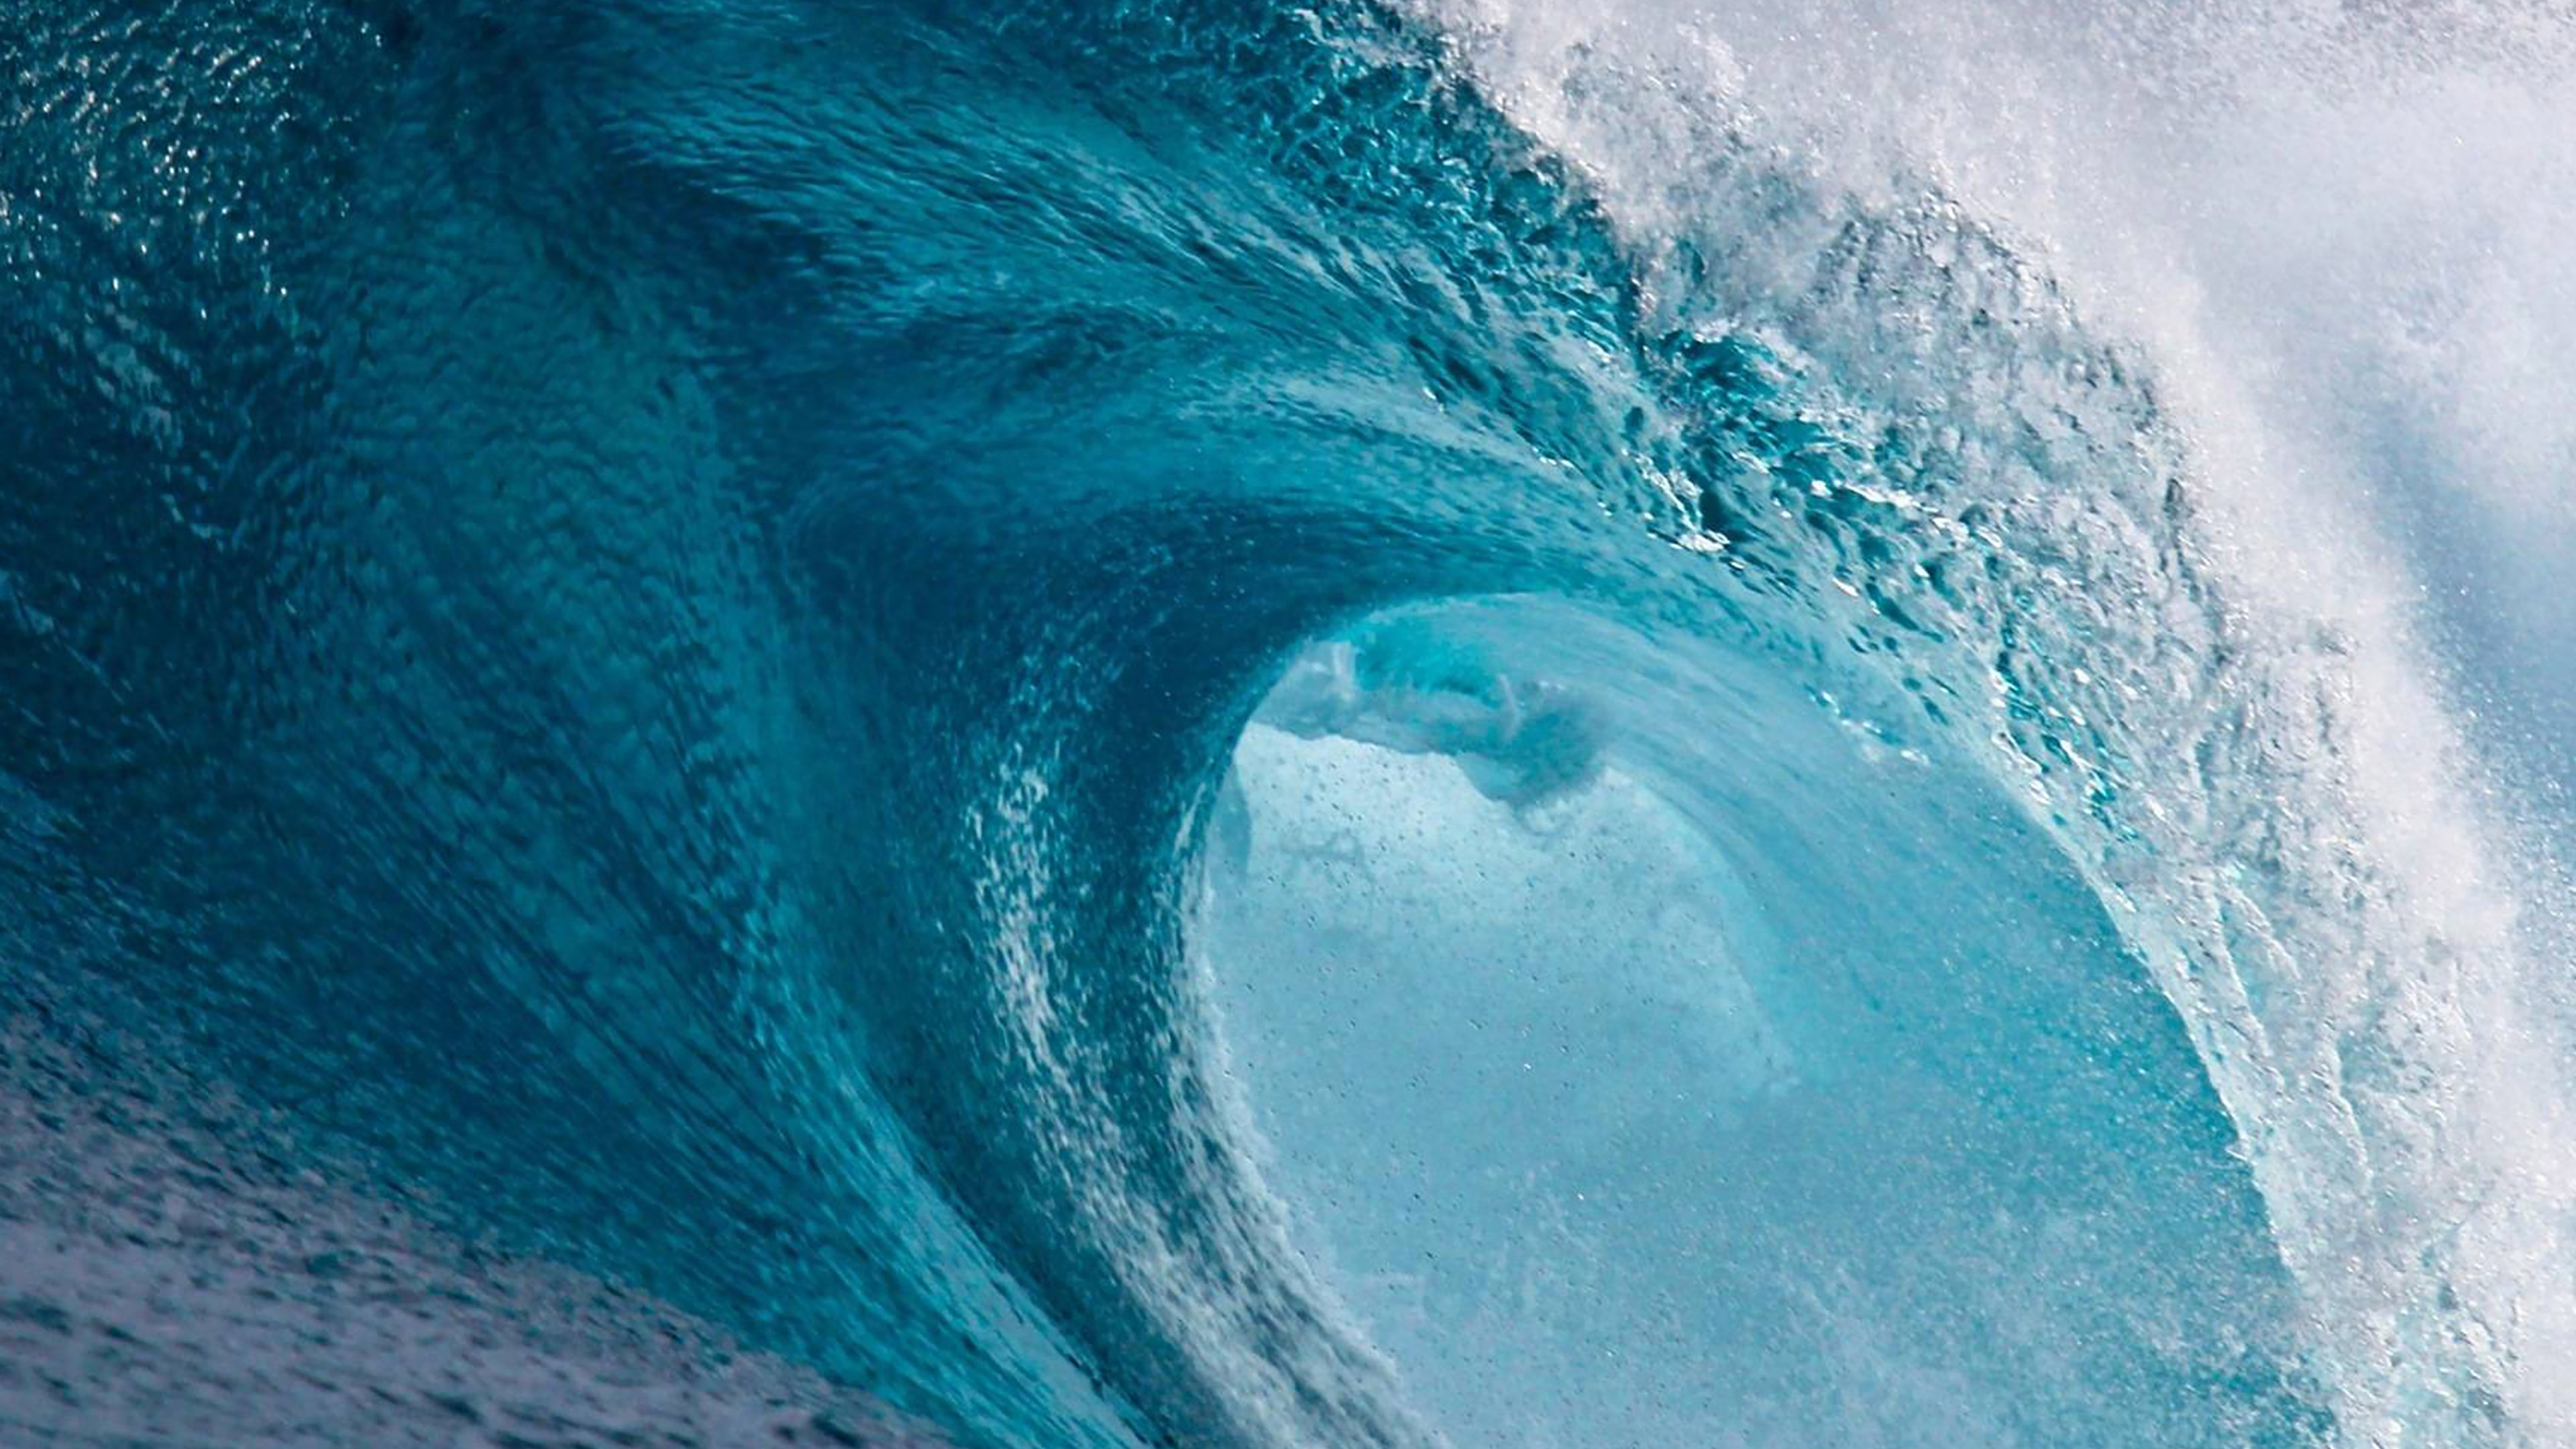 mj35-wave-surf-ocean-sea-beach-art-nature - Papers.co